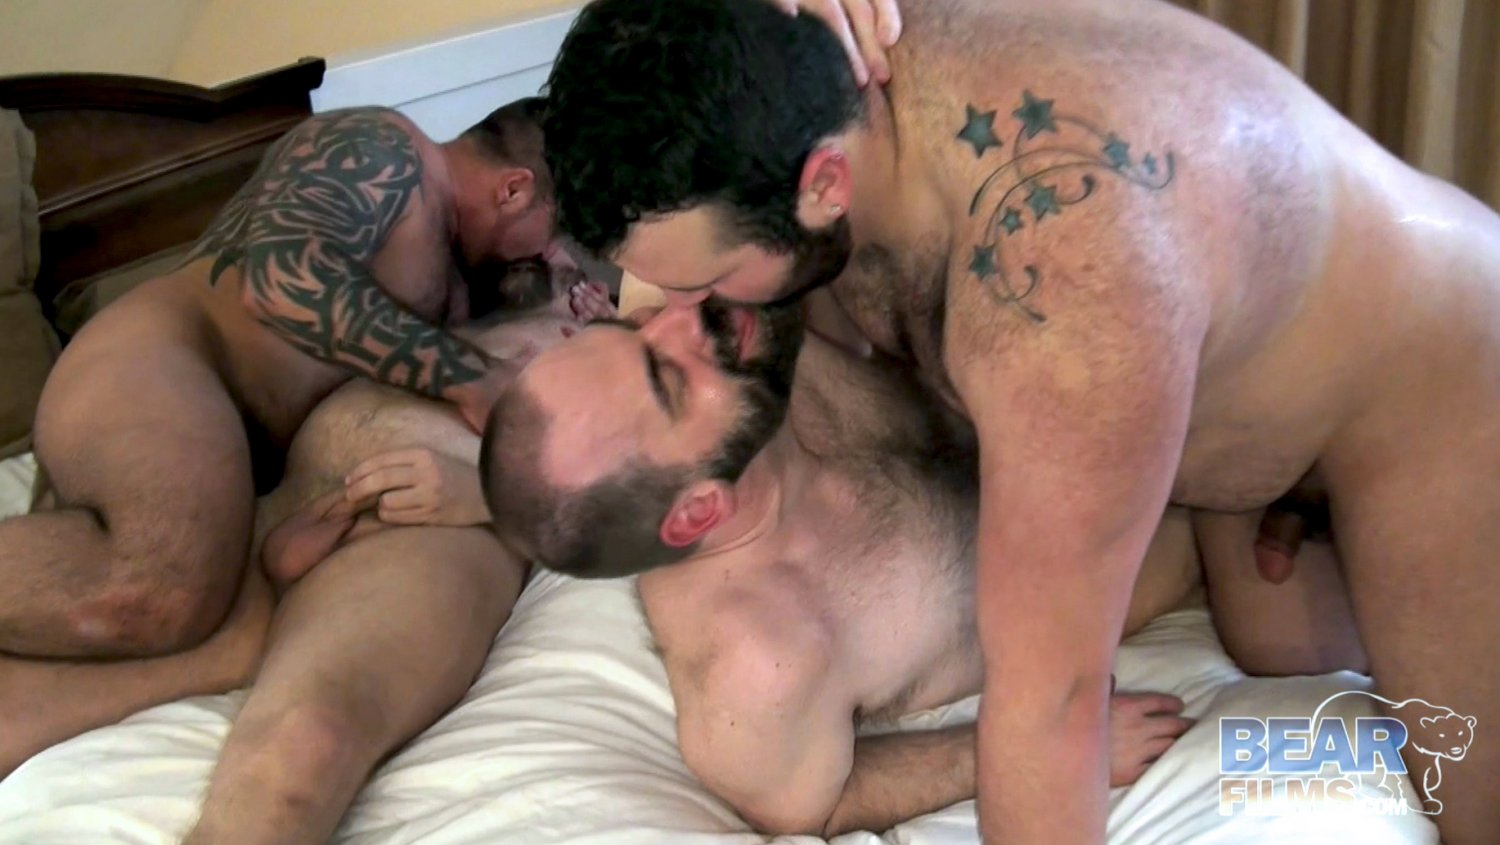 Bear Run Bear Romp - BearFilms Caucasian tangowire dating only one guy kobayashi issa images